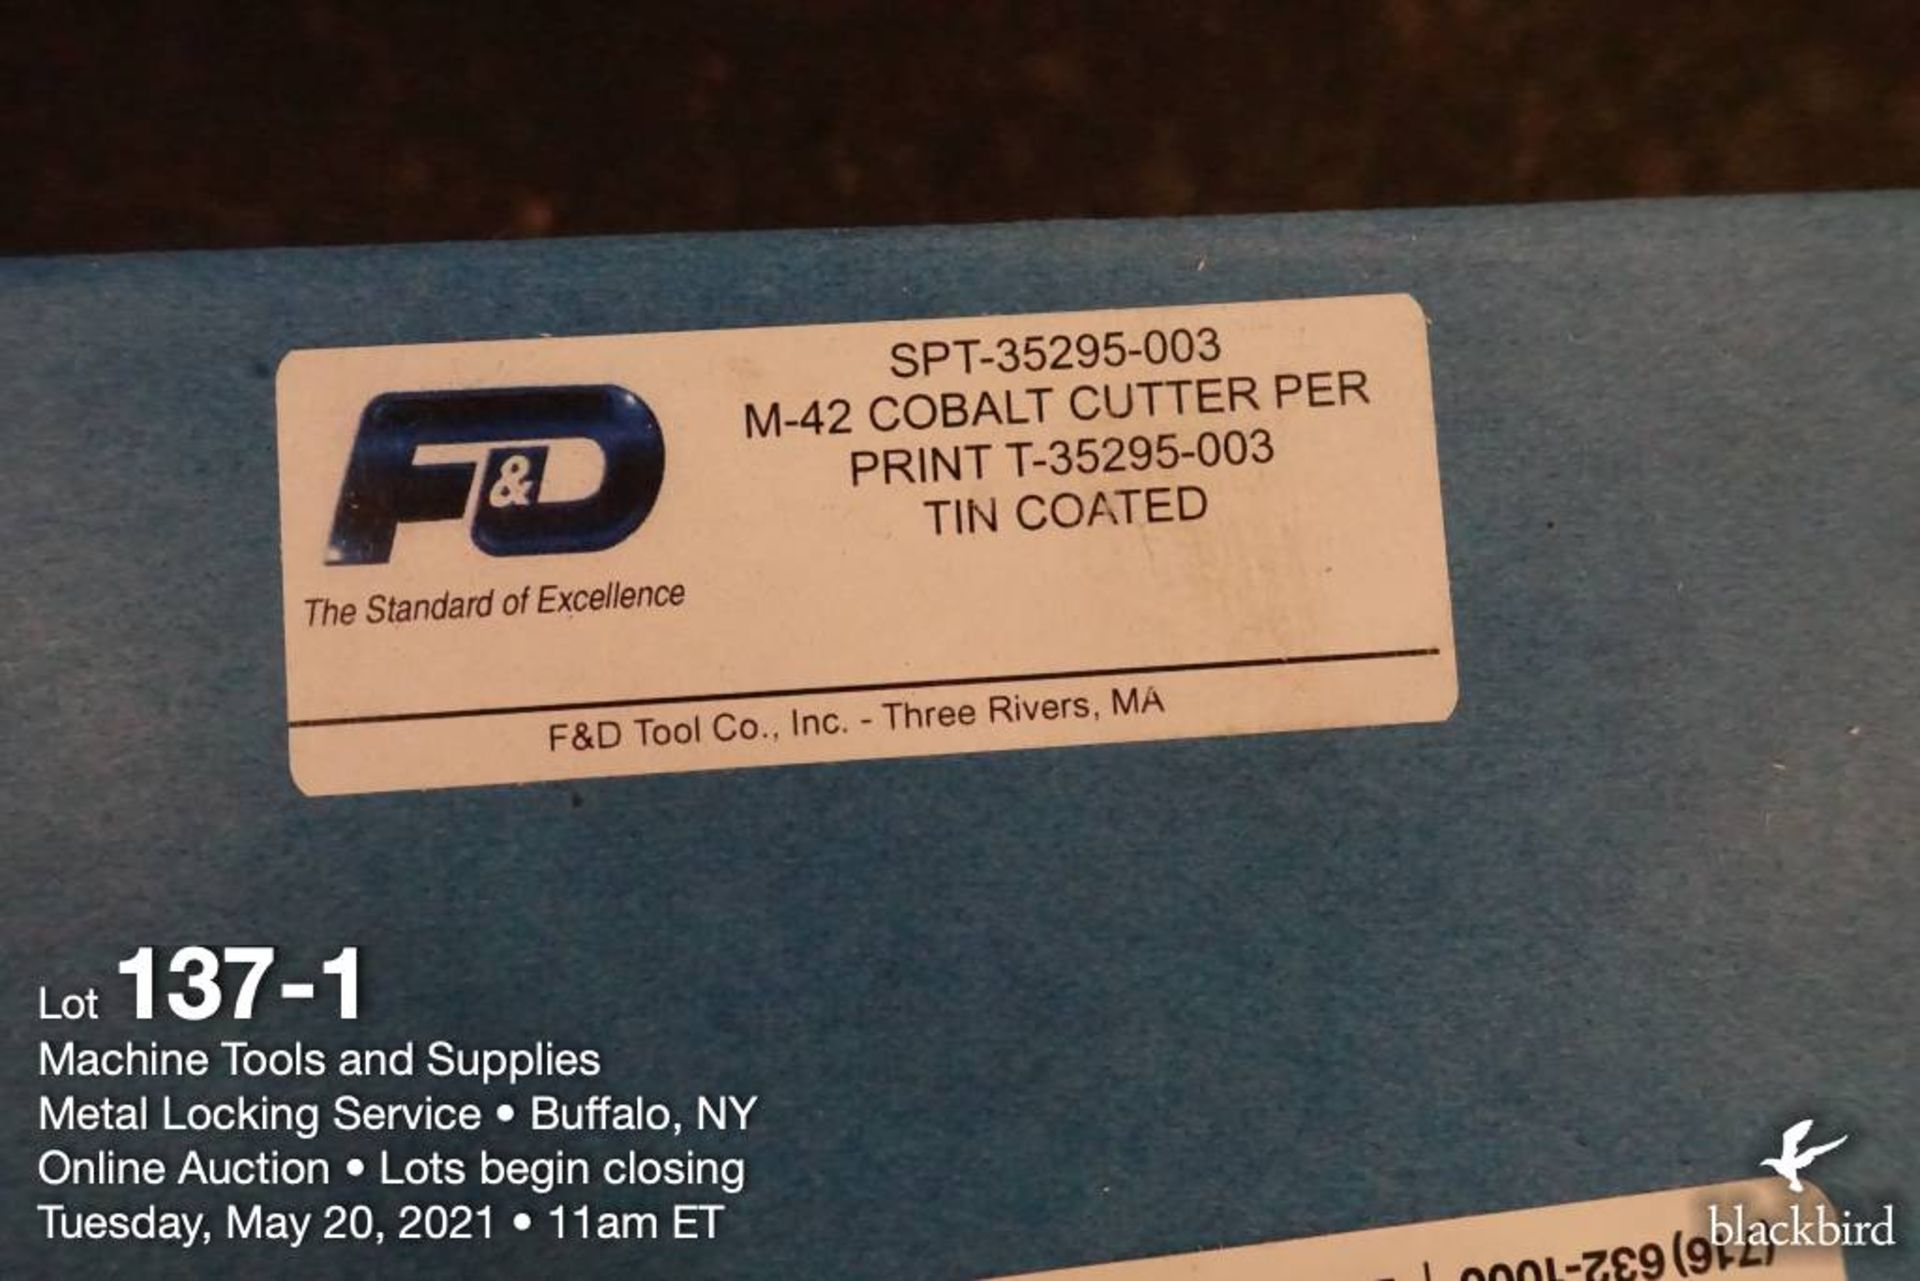 F&D cobalt milling cutter, tin coated - Image 2 of 2